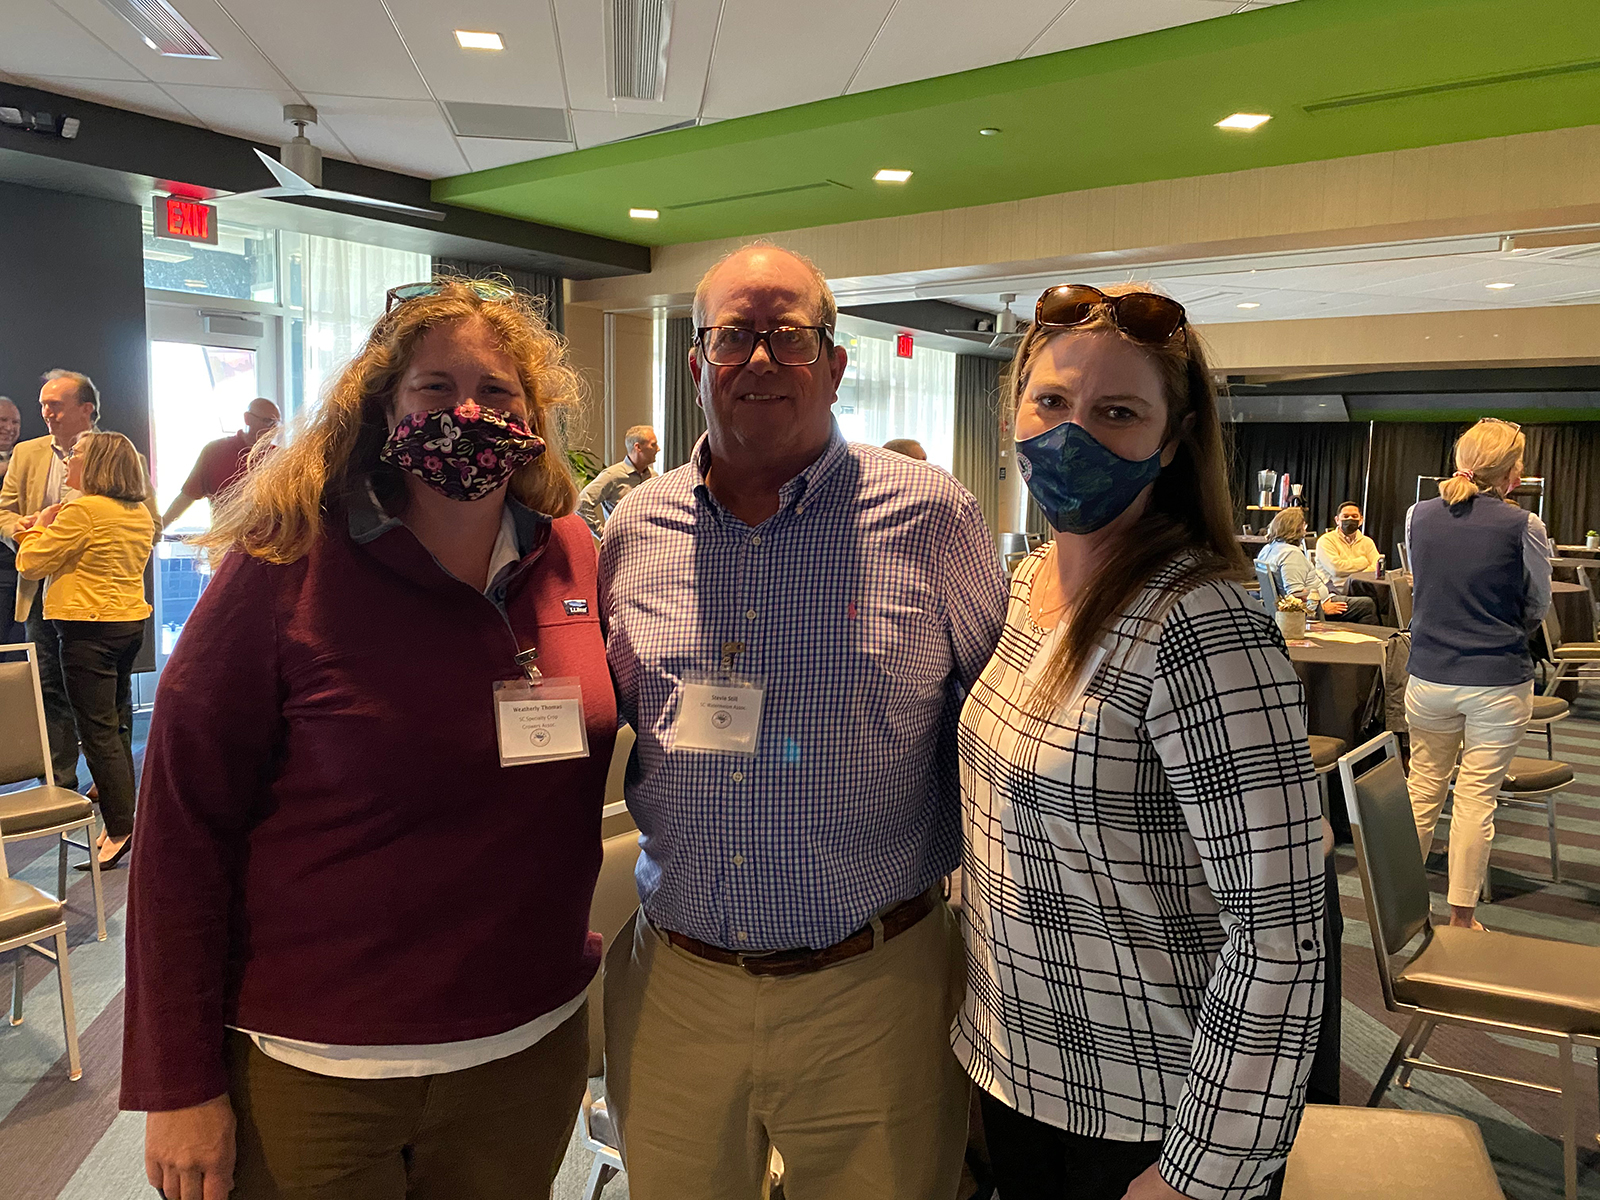 Weatherly Thomas of the South Carolina Specialty Crop Growers Association, Stevie Still of the South Carolina Watermelon Association and Michelle Cantey of the South Carolina Department of Agriculture.